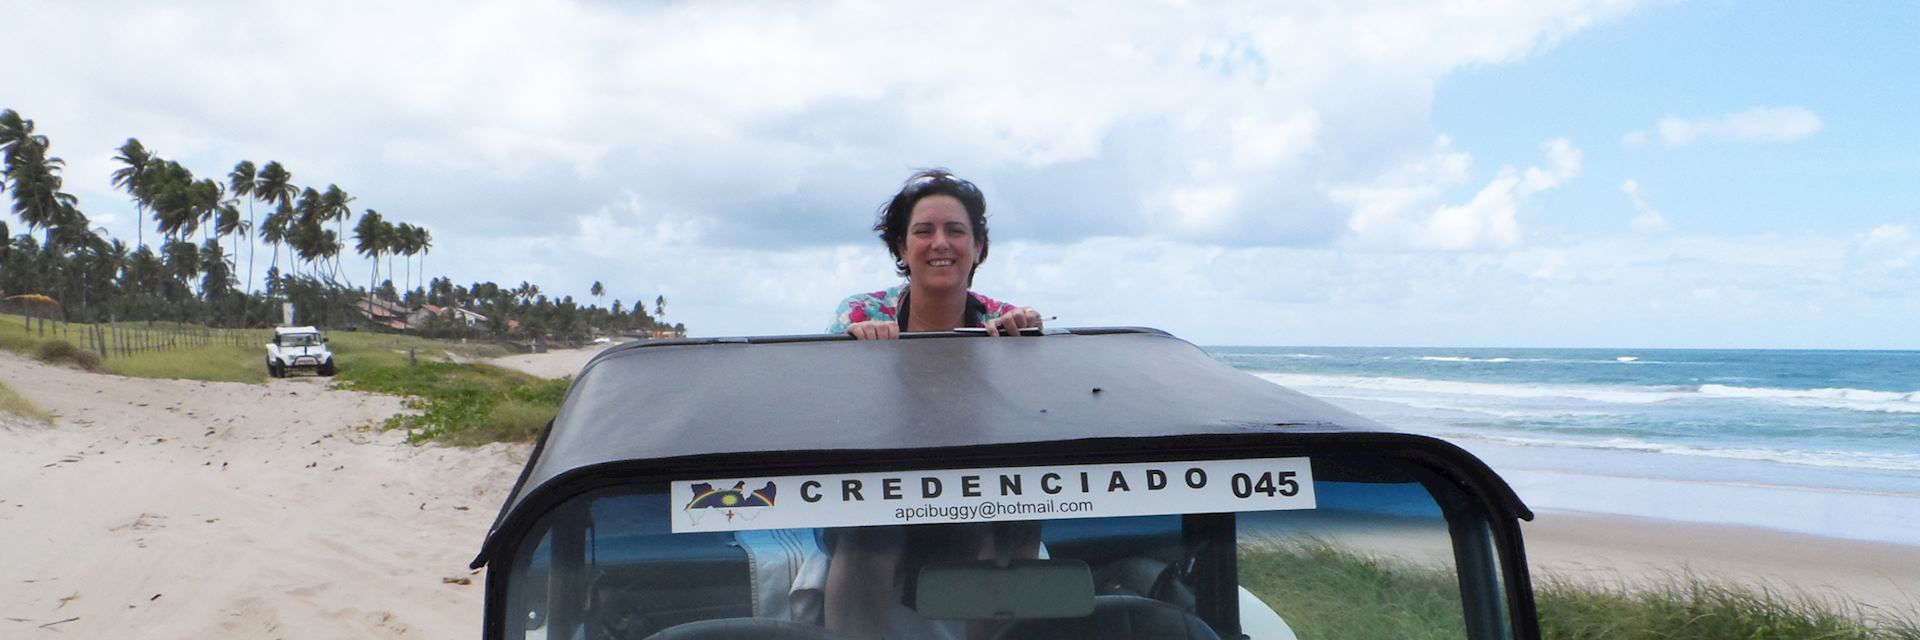 Fiona on a buggy tour in Porto de Galinha